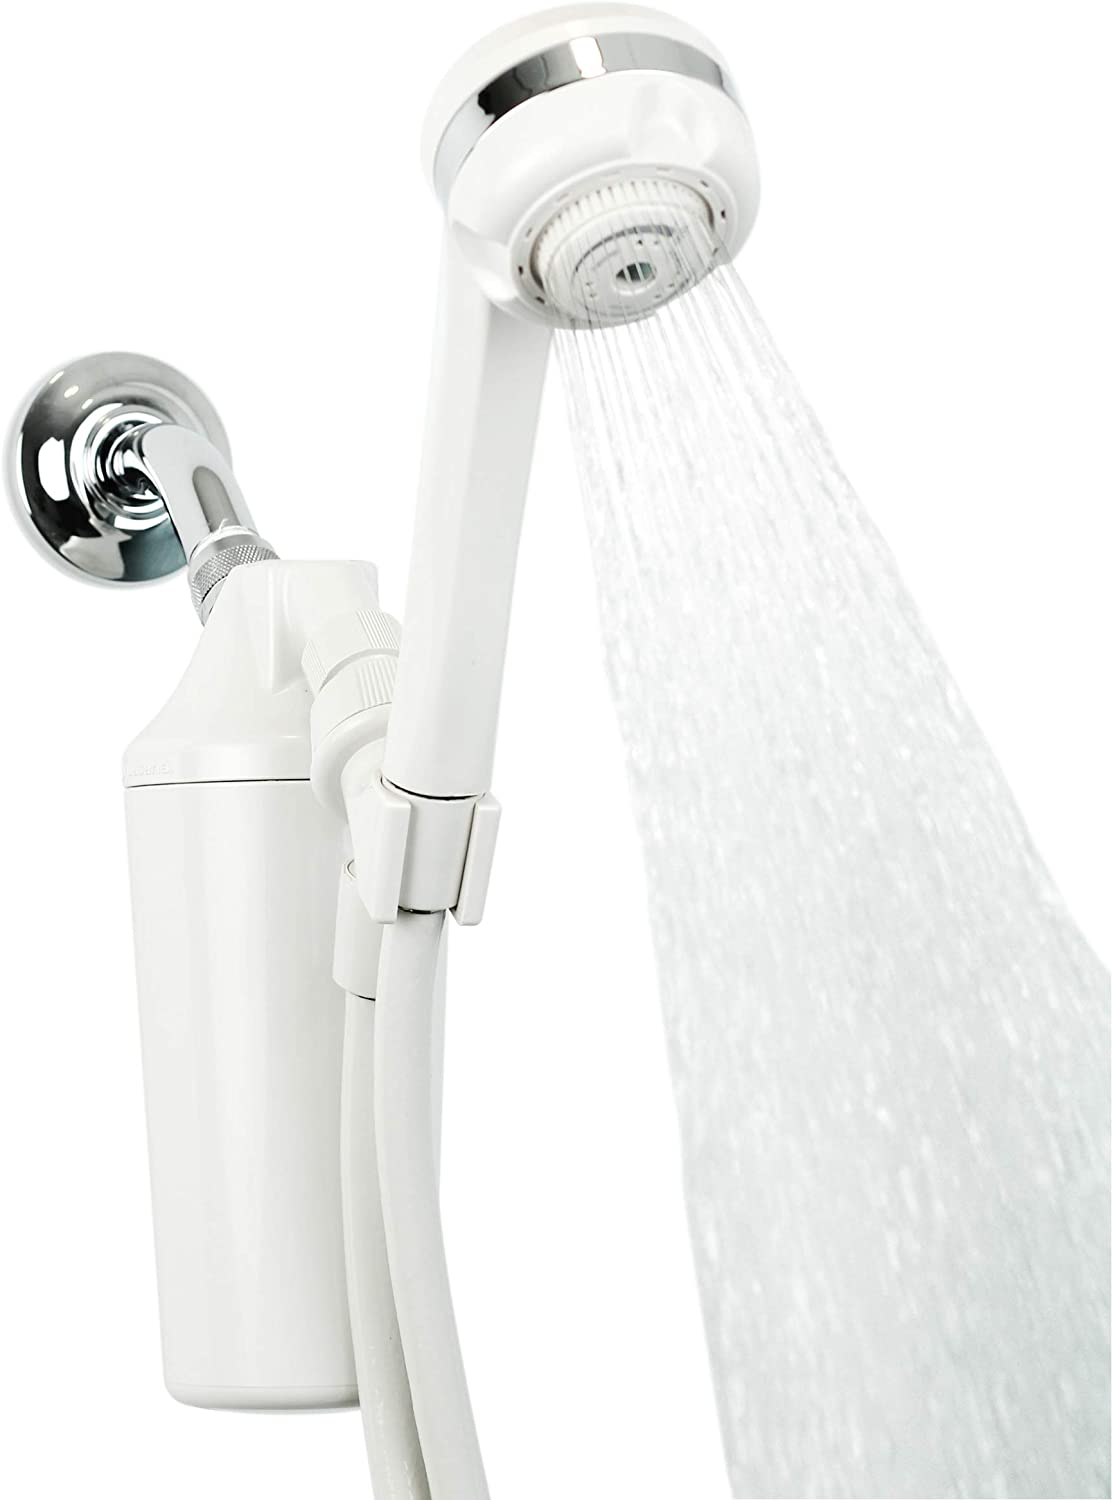 Aquasana AQ-4105 Shower Head Water Filter